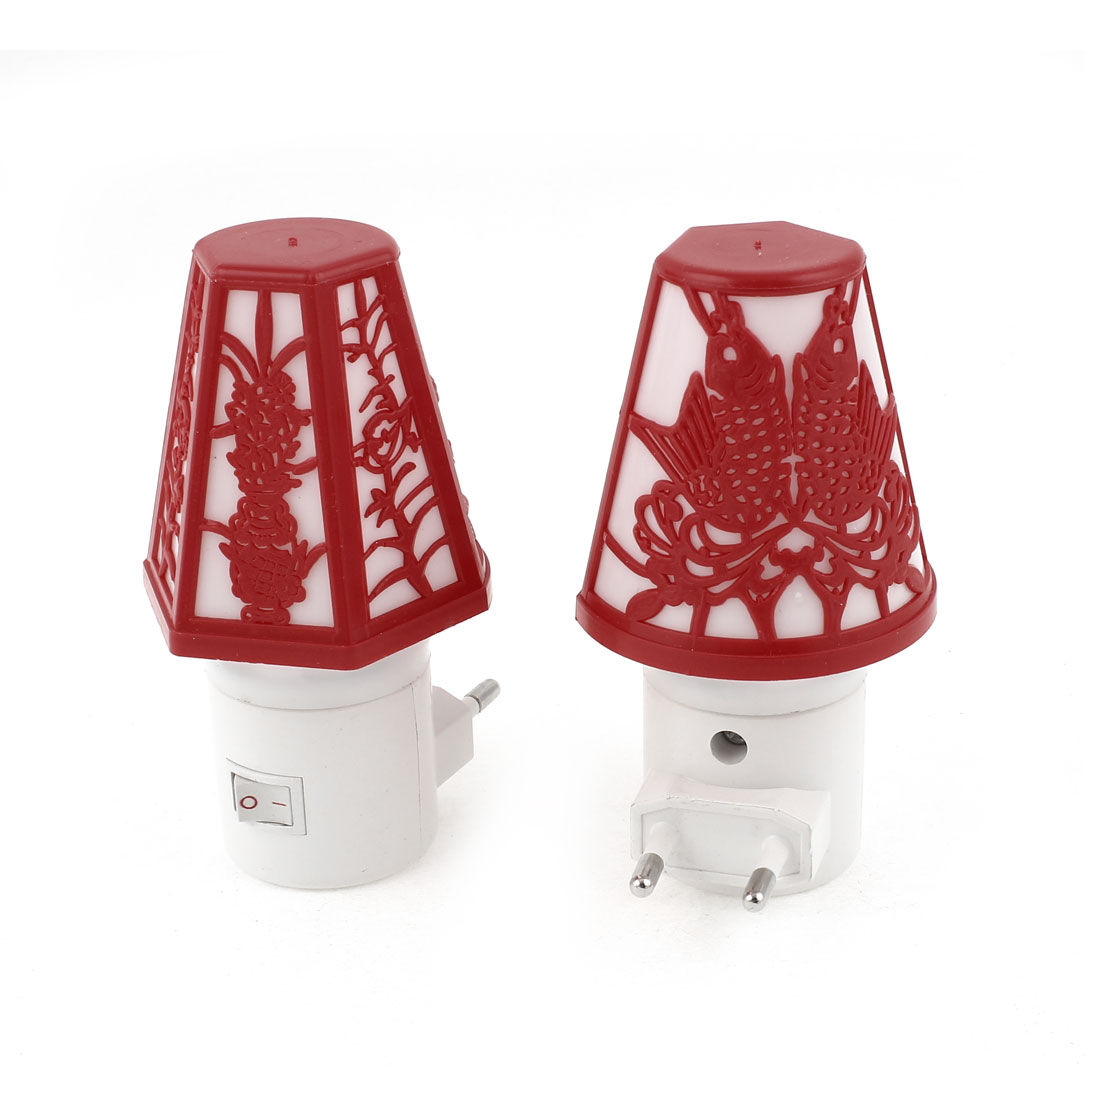 AC 110-250V EU Plug Table Lamp Shaped Colorful LED Night Light 2 Pcs